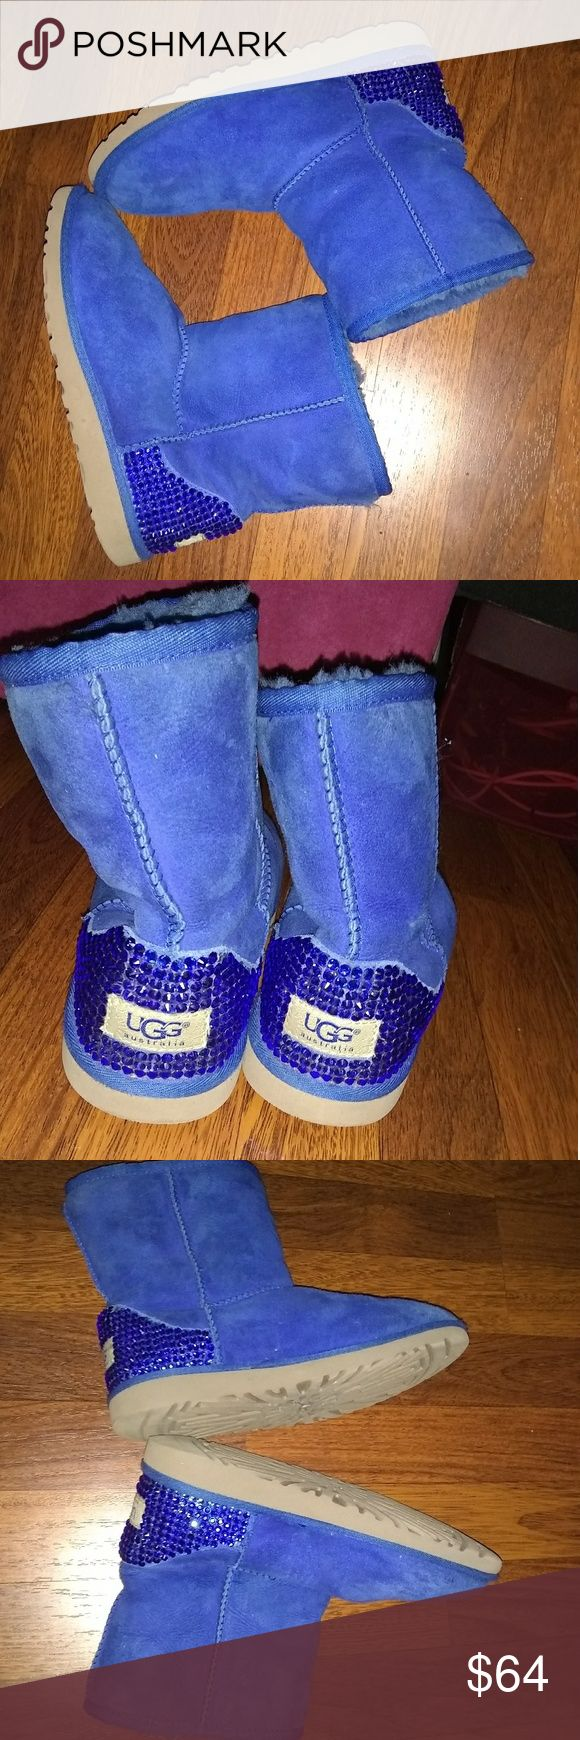 Blue Ugg boots Size 4 youth which can fit a 6/6.5 women's. Blue suede. Good condition. UGG Shoes Winter & Rain Boots